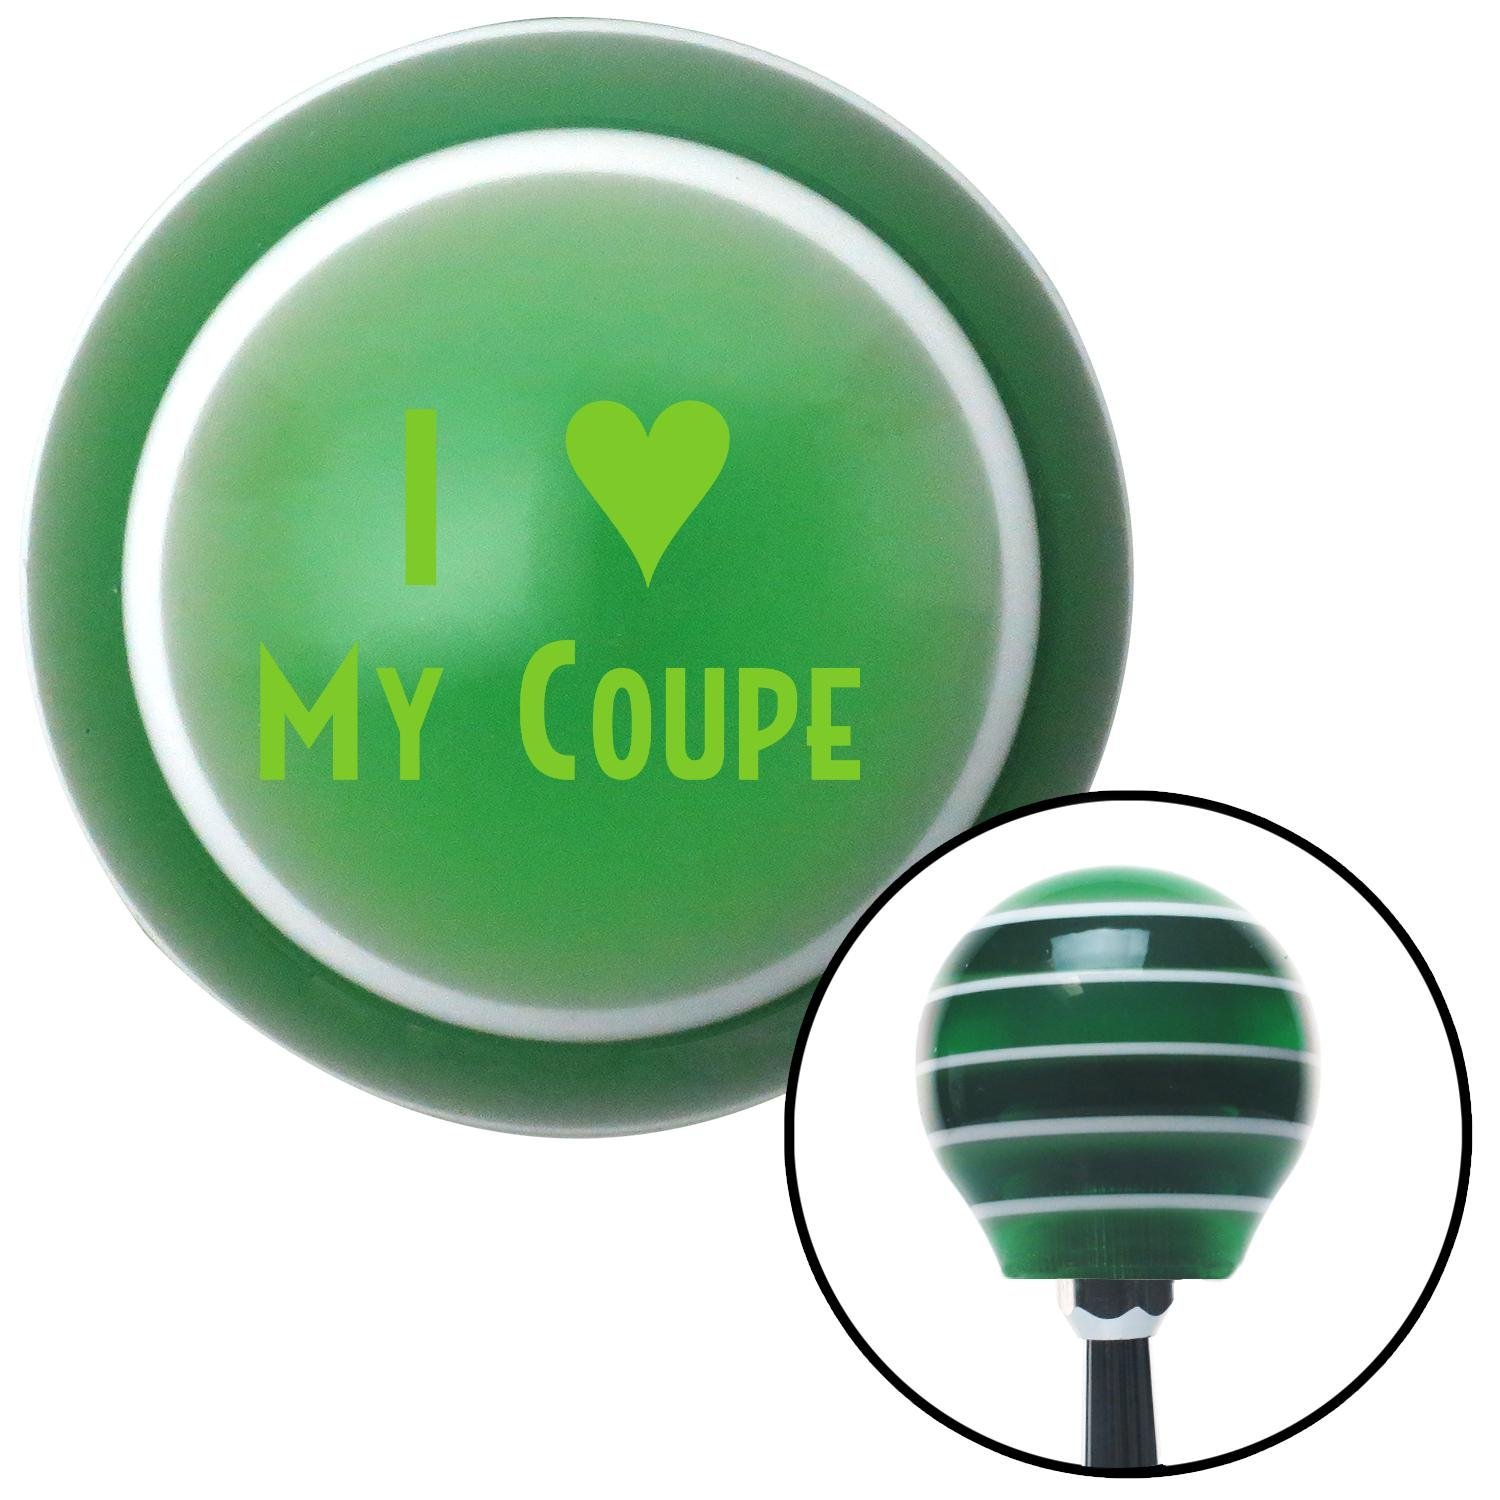 American Shifter 123687 Green Stripe Shift Knob with M16 x 1.5 Insert Green I 3 My Coupe